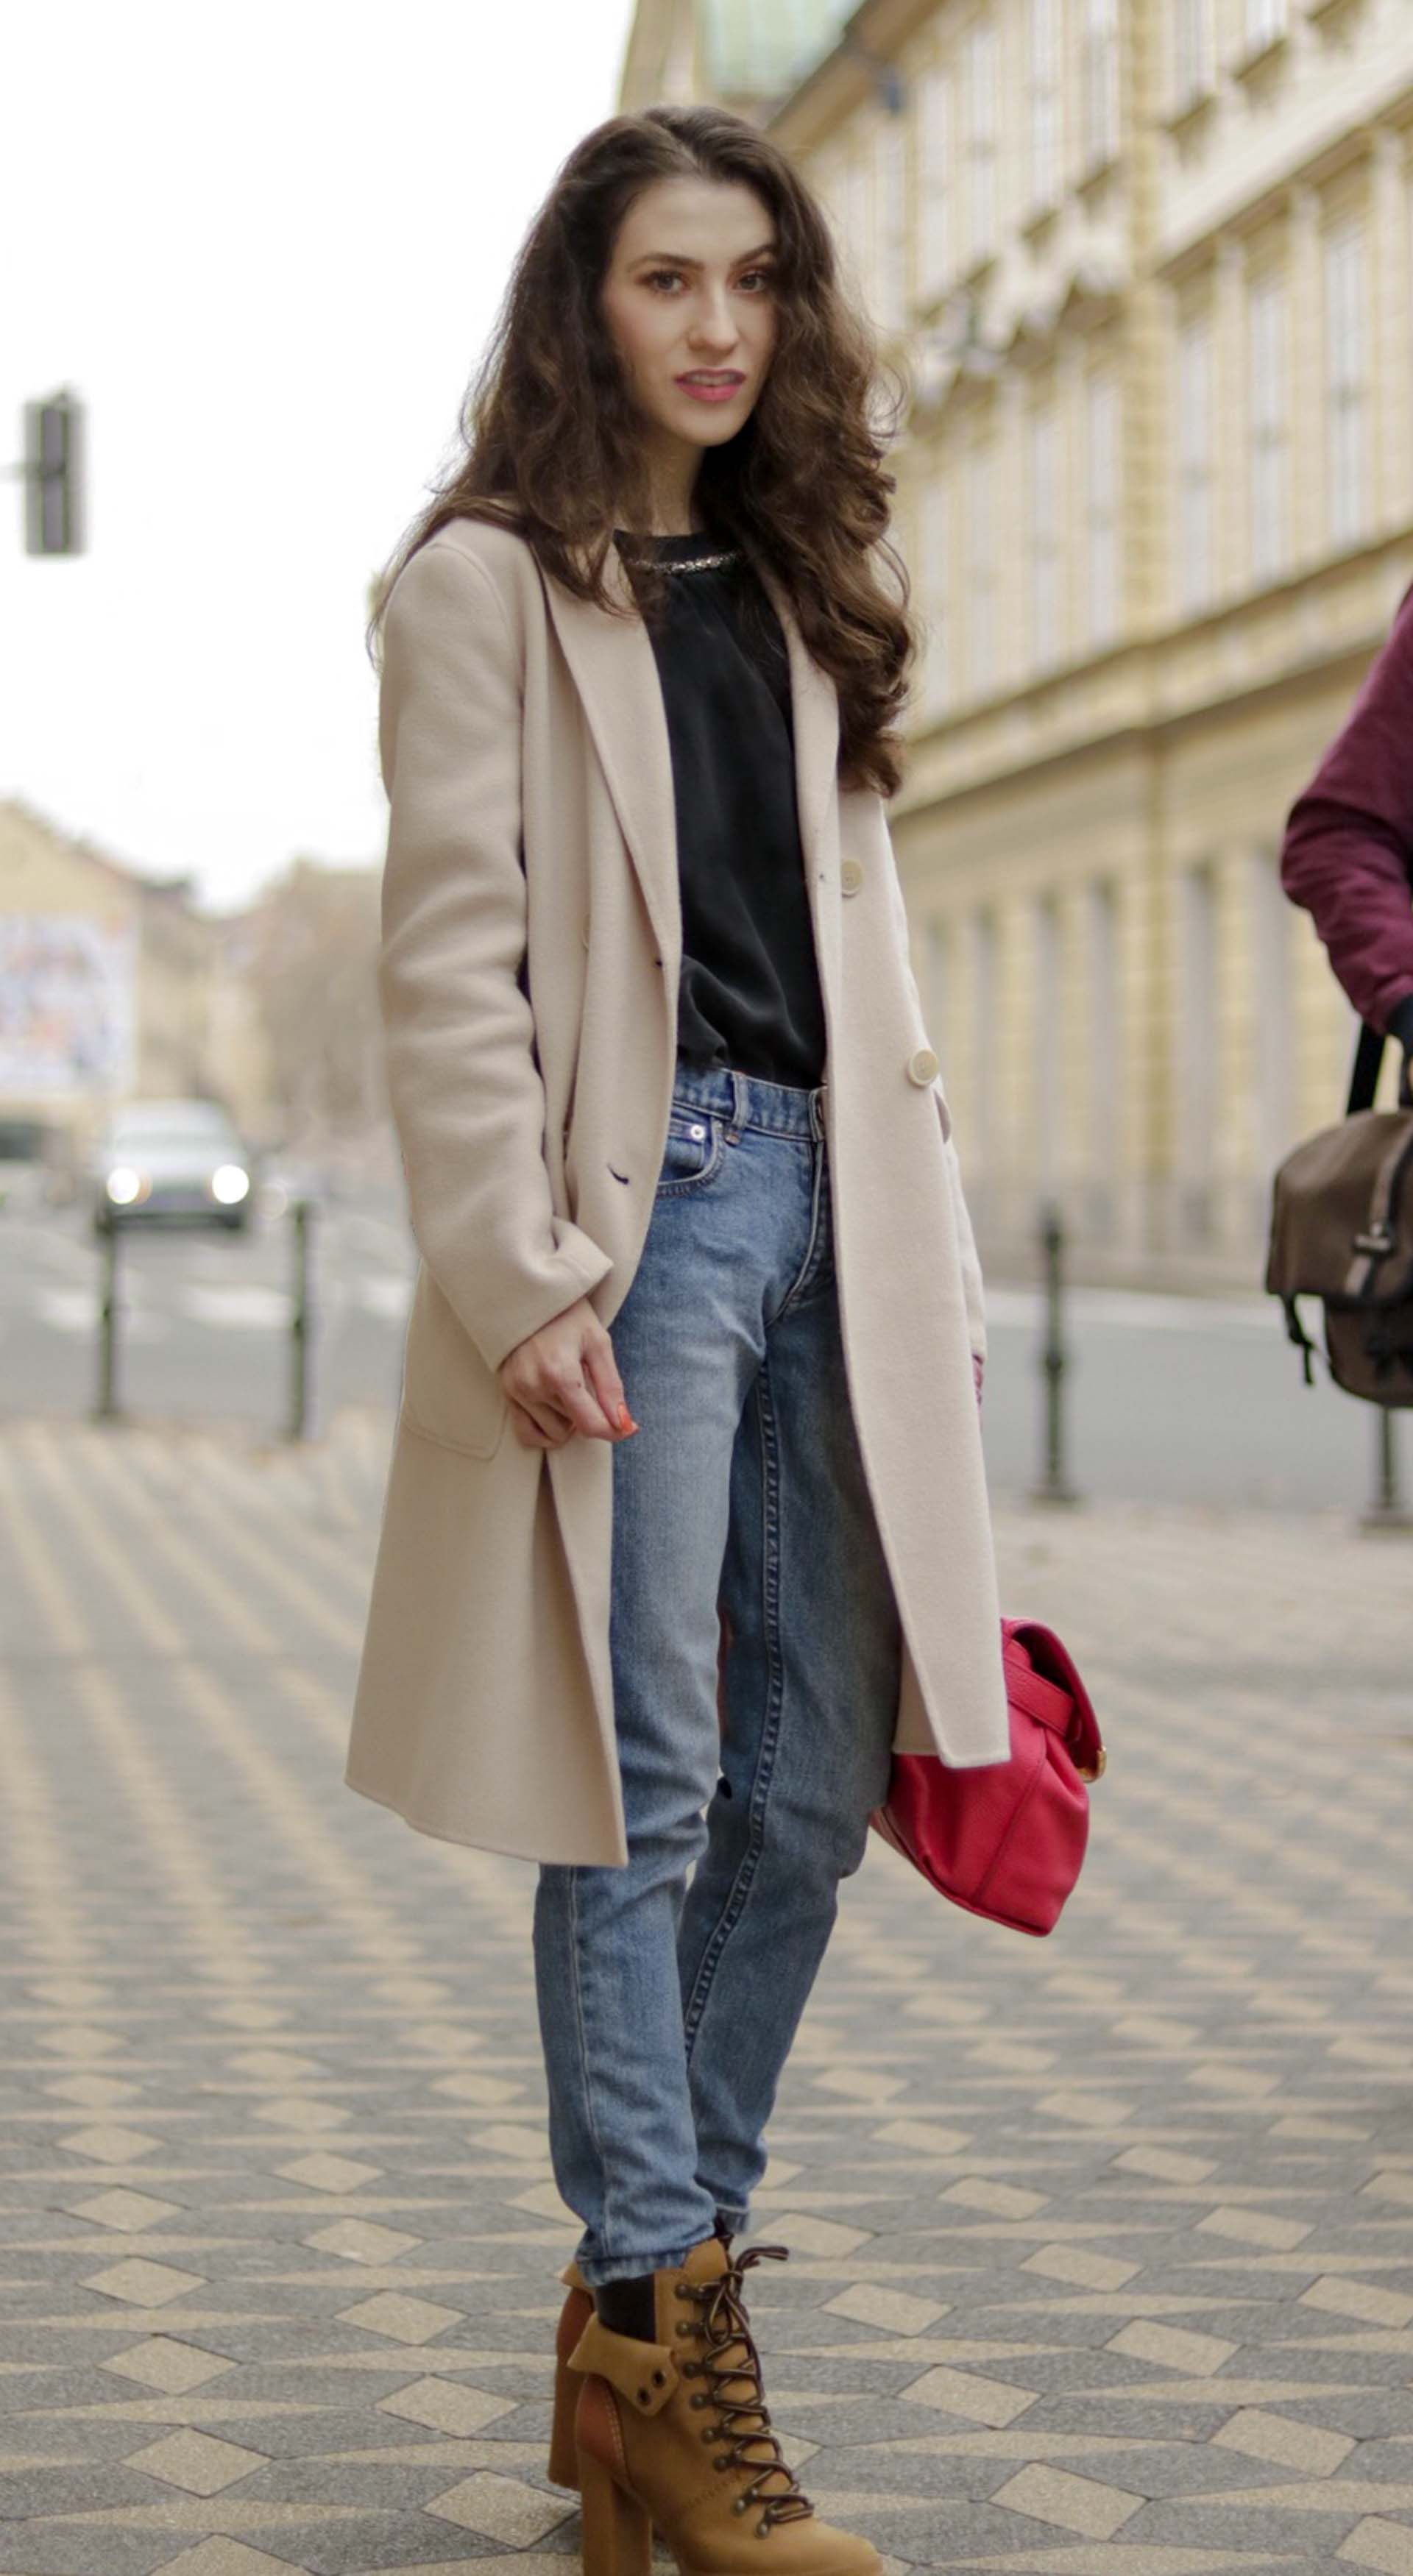 e28b5f81b2 Must follow Slovenian Fashion Blogger Veronika Lipar of Brunette from Wall  Street dressed in See By